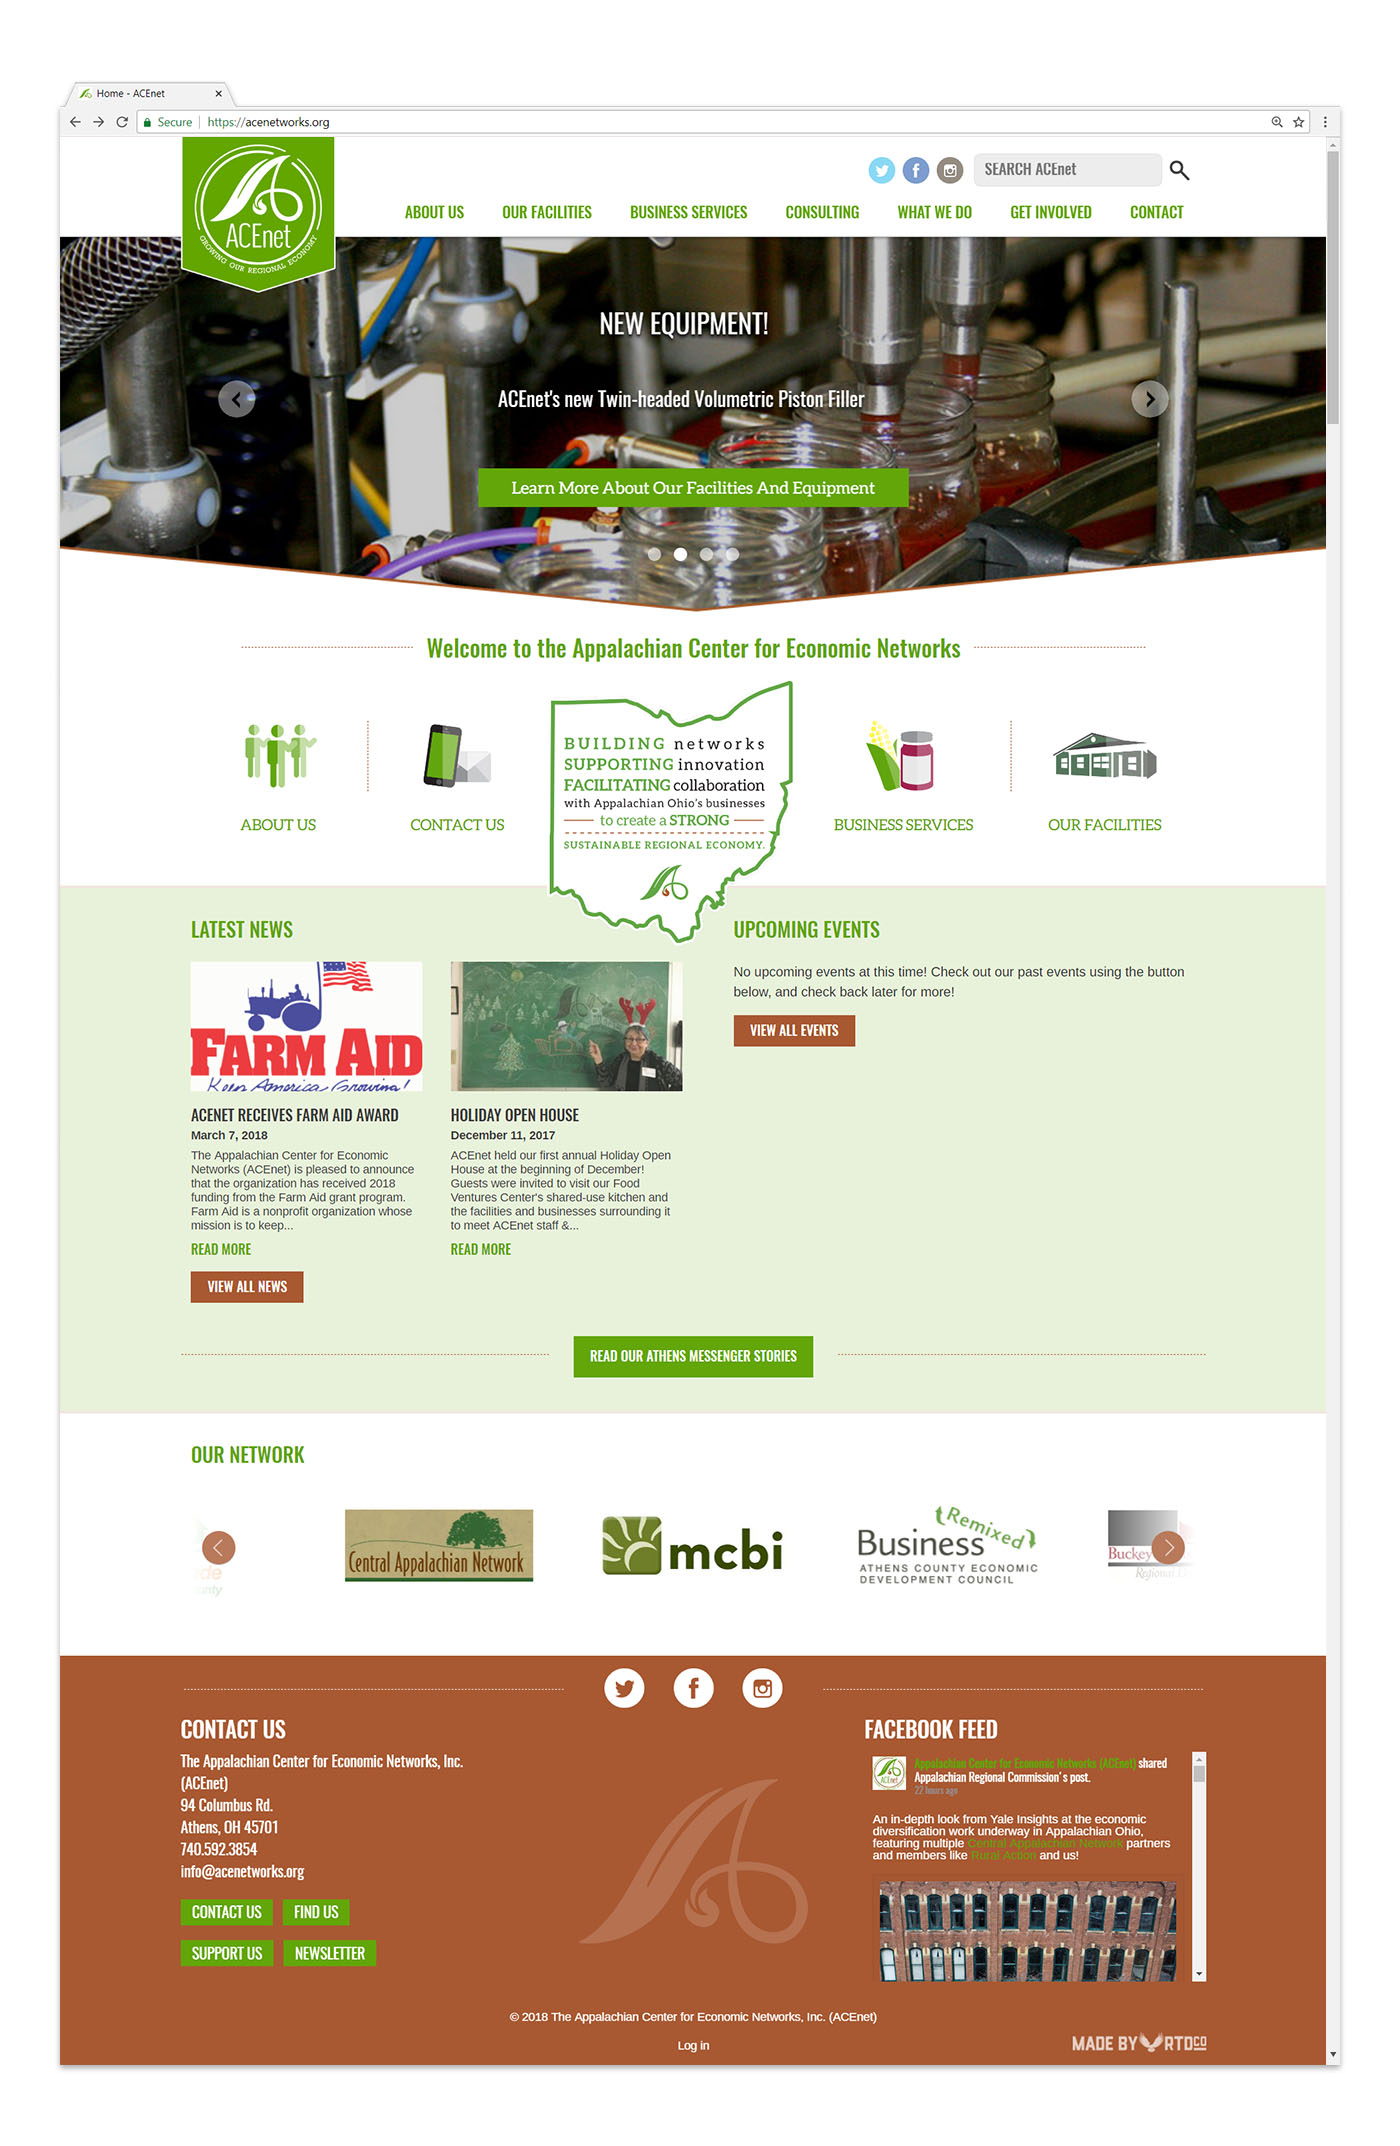 Acnet Athens website design mockup by Red Tail Design